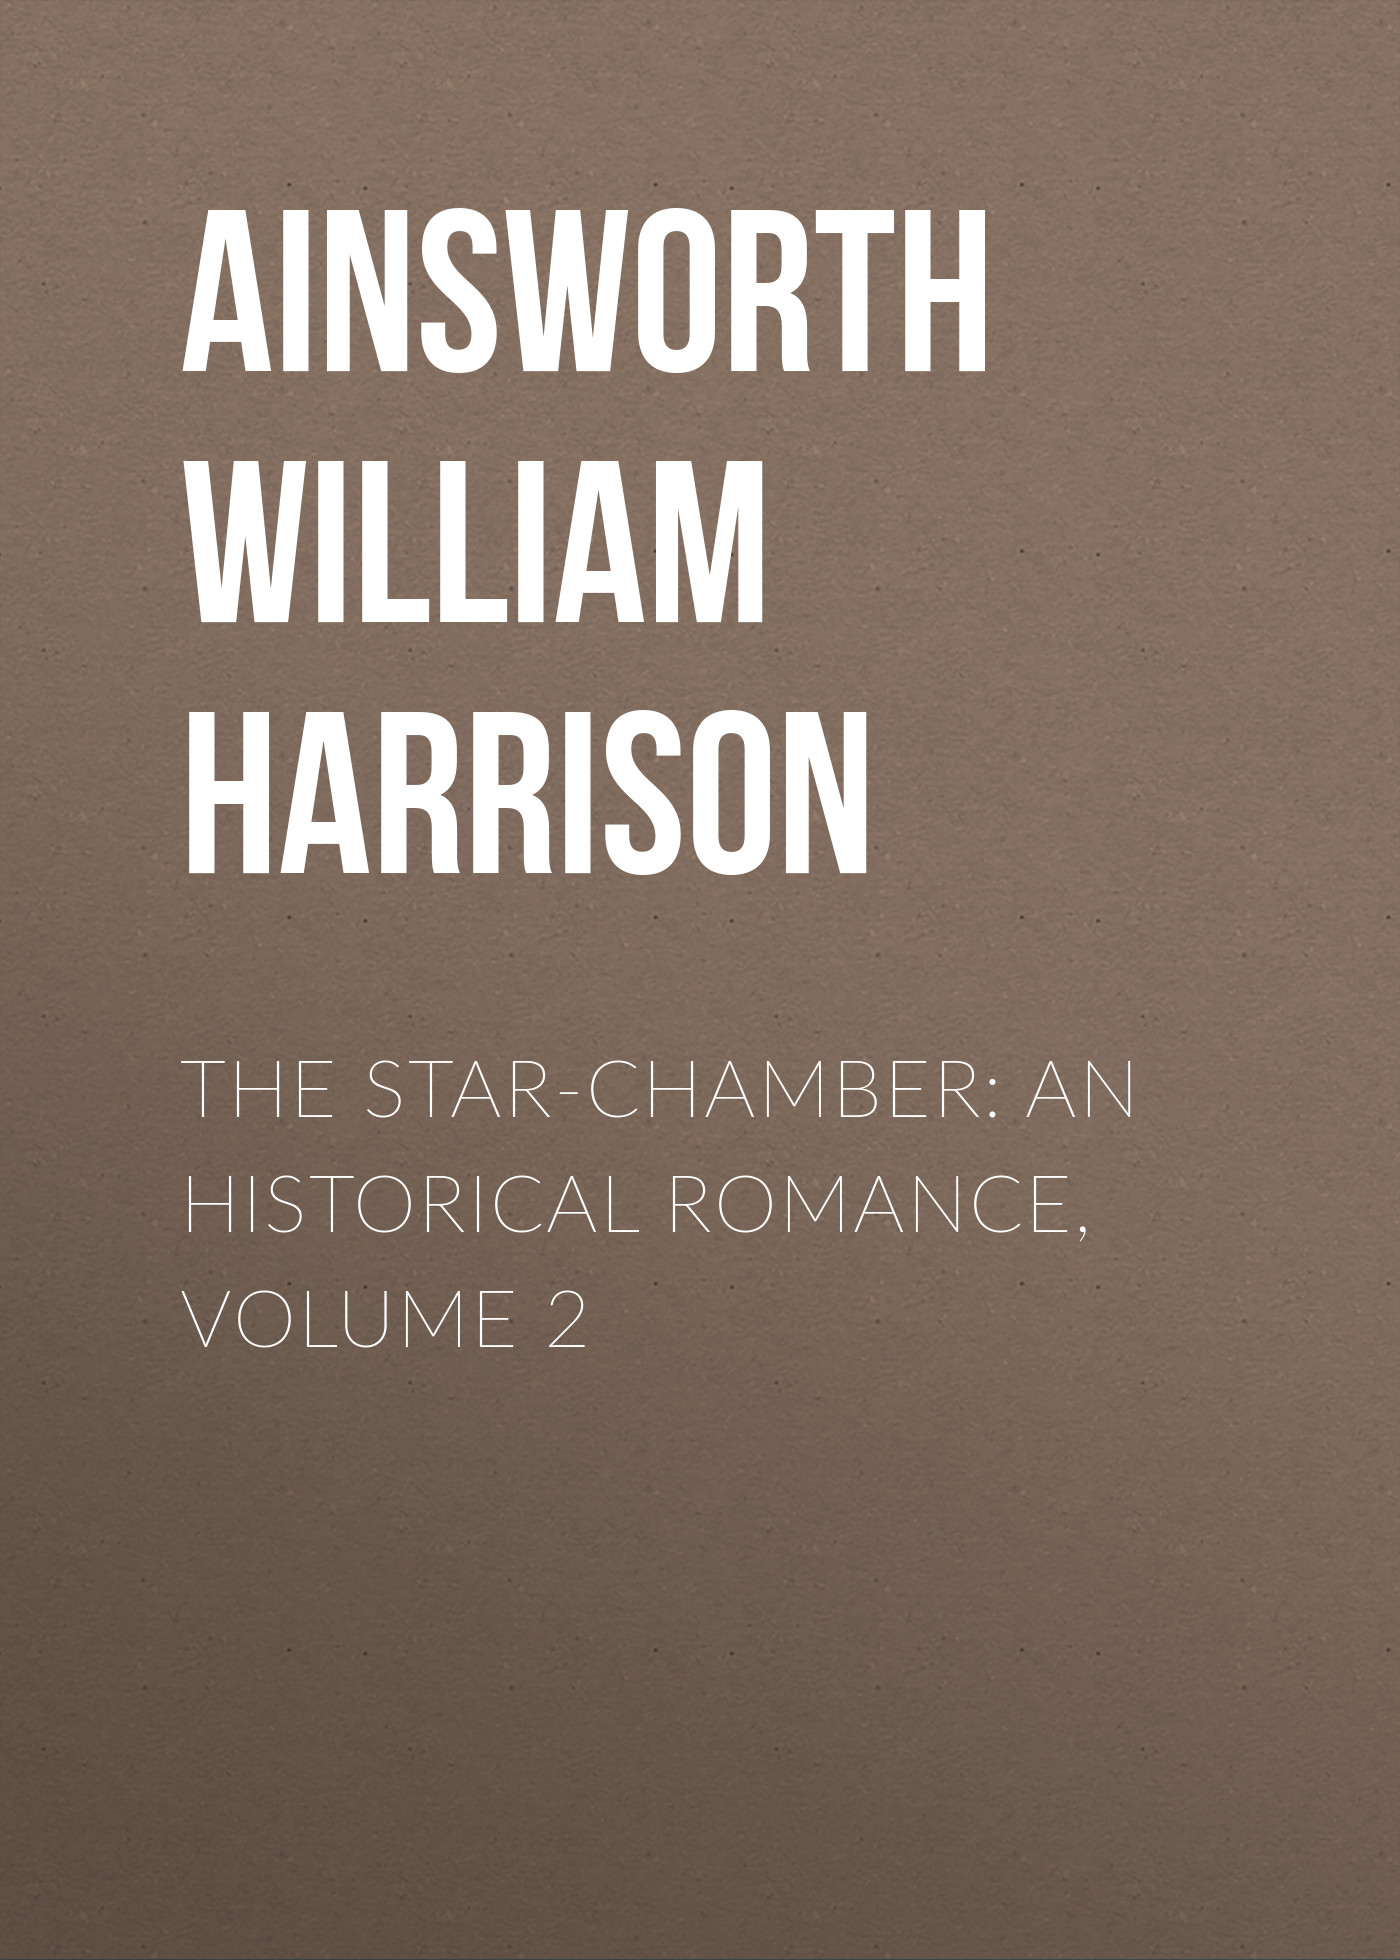 Ainsworth William Harrison The Star-Chamber: An Historical Romance, Volume 2 ainsworth william harrison the star chamber an historical romance volume 1